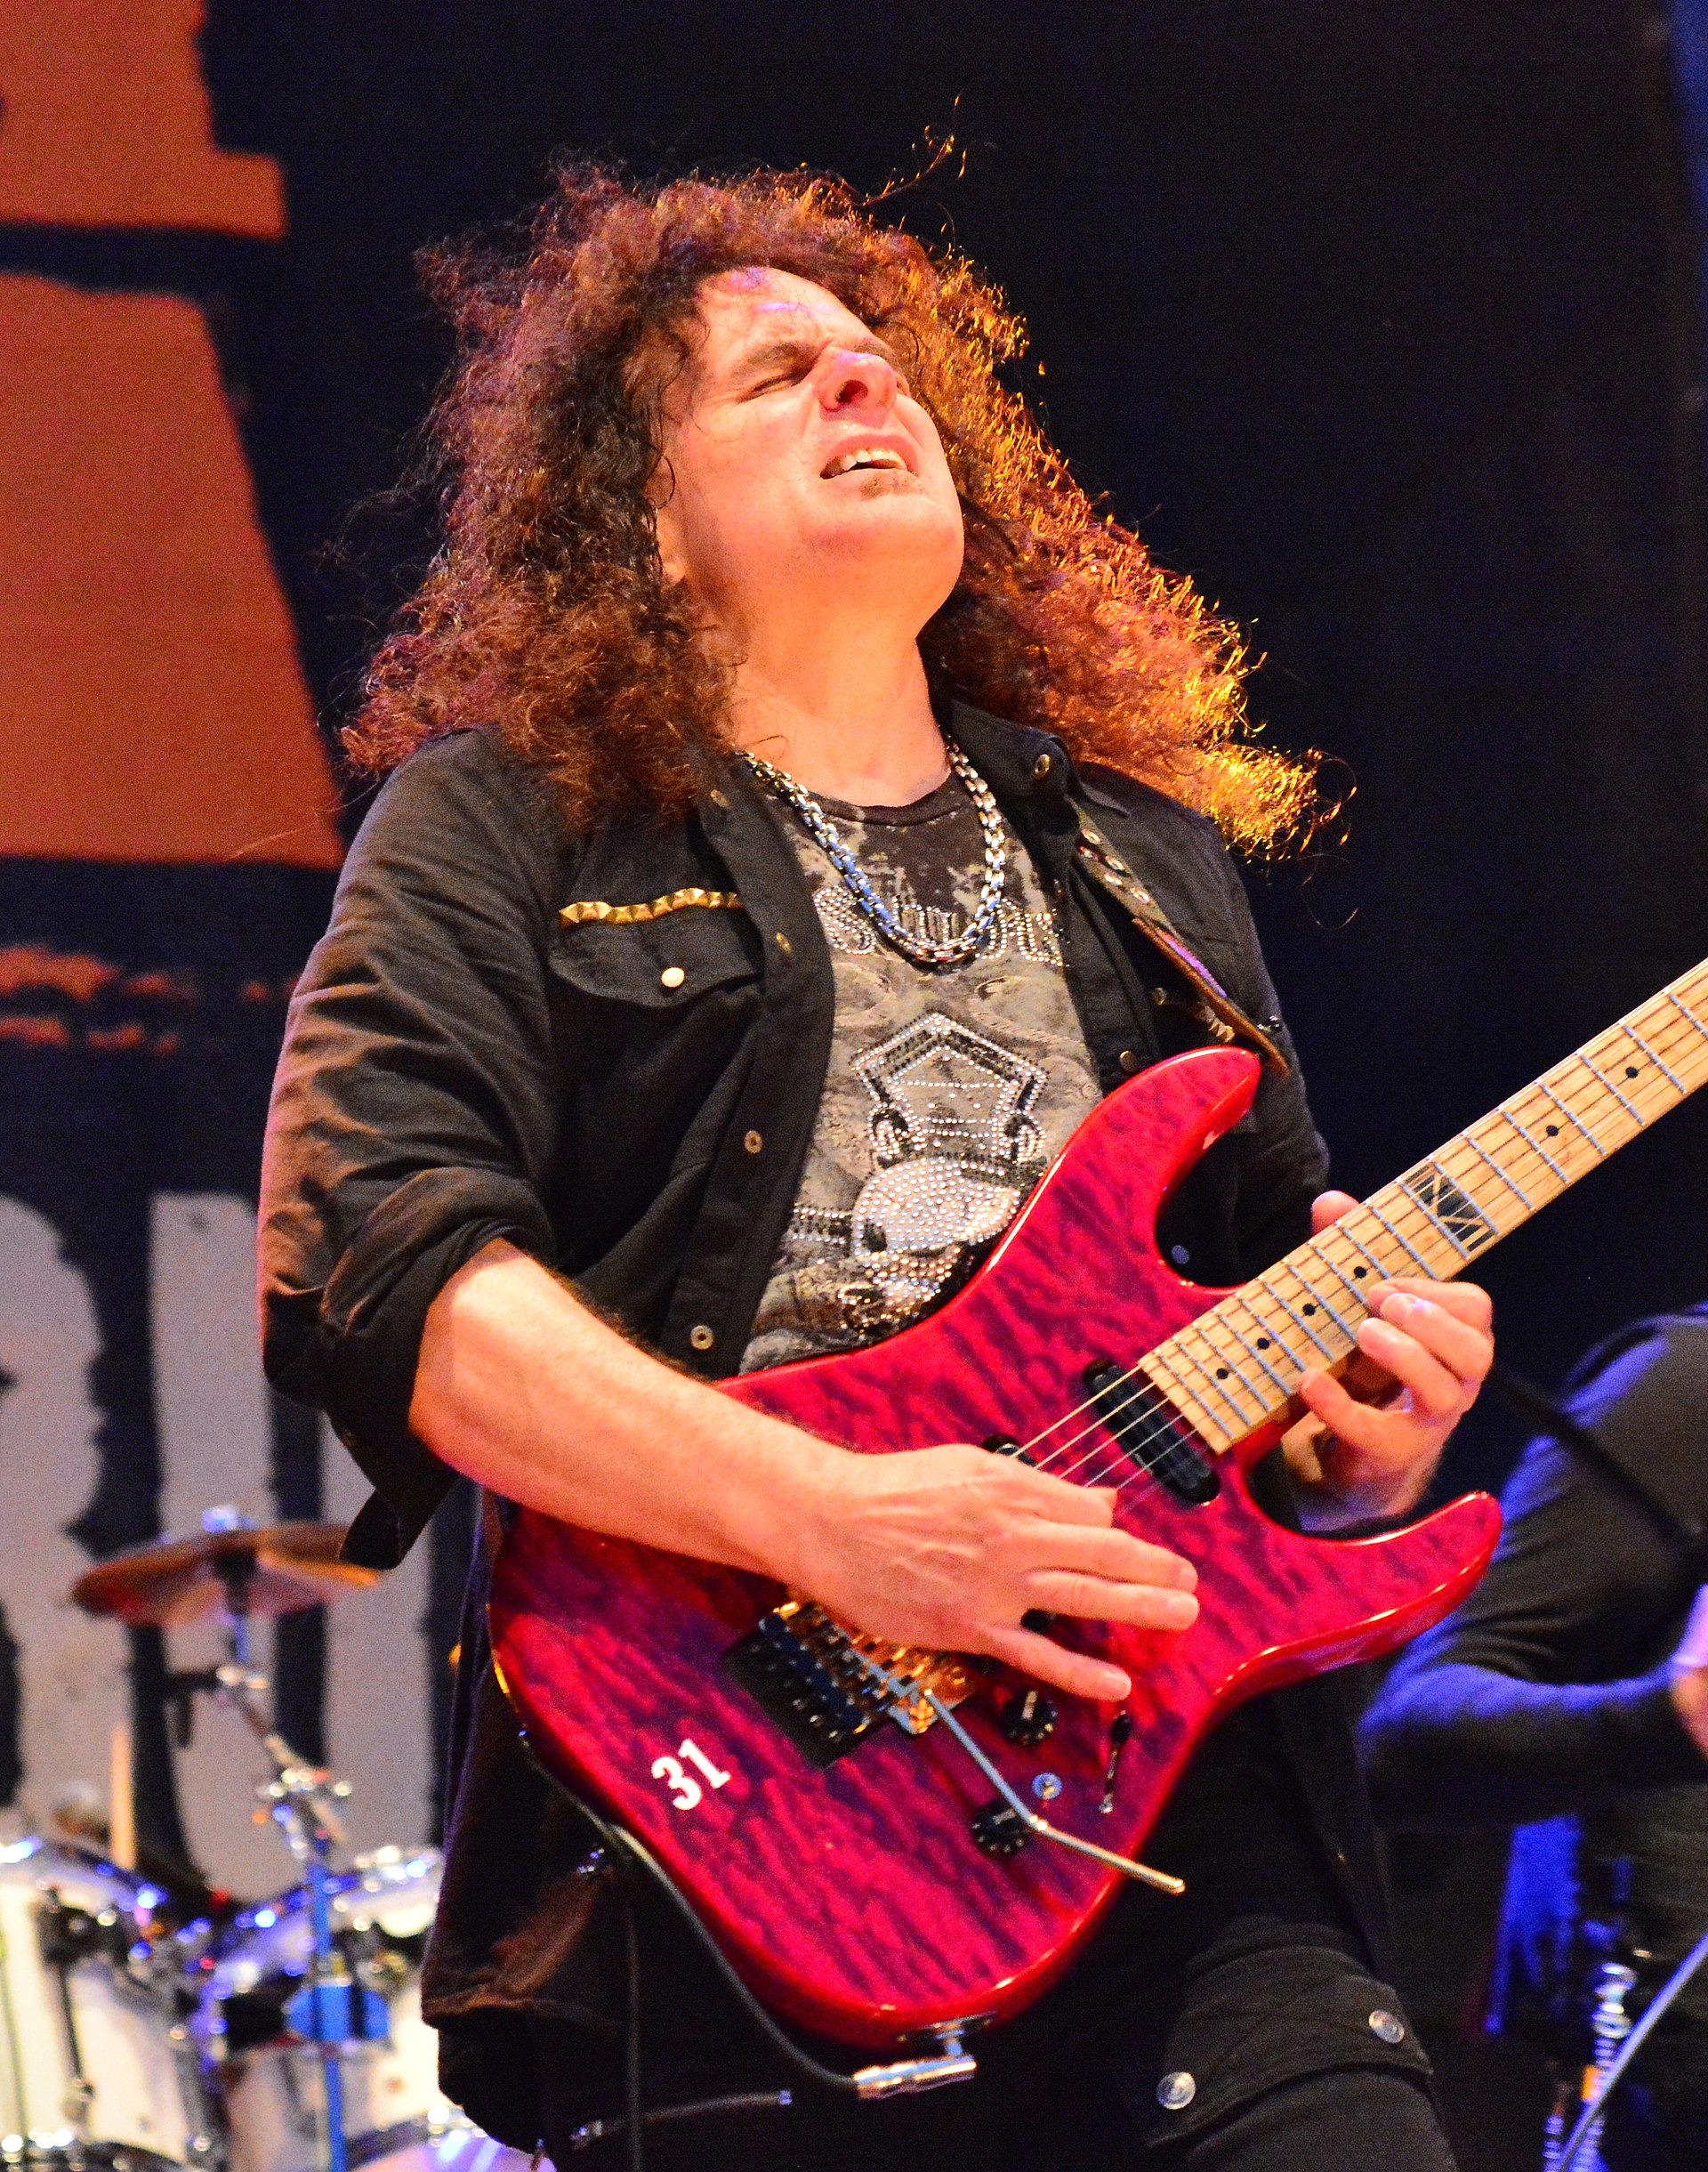 Vinnie moore speed accuracy and articulation